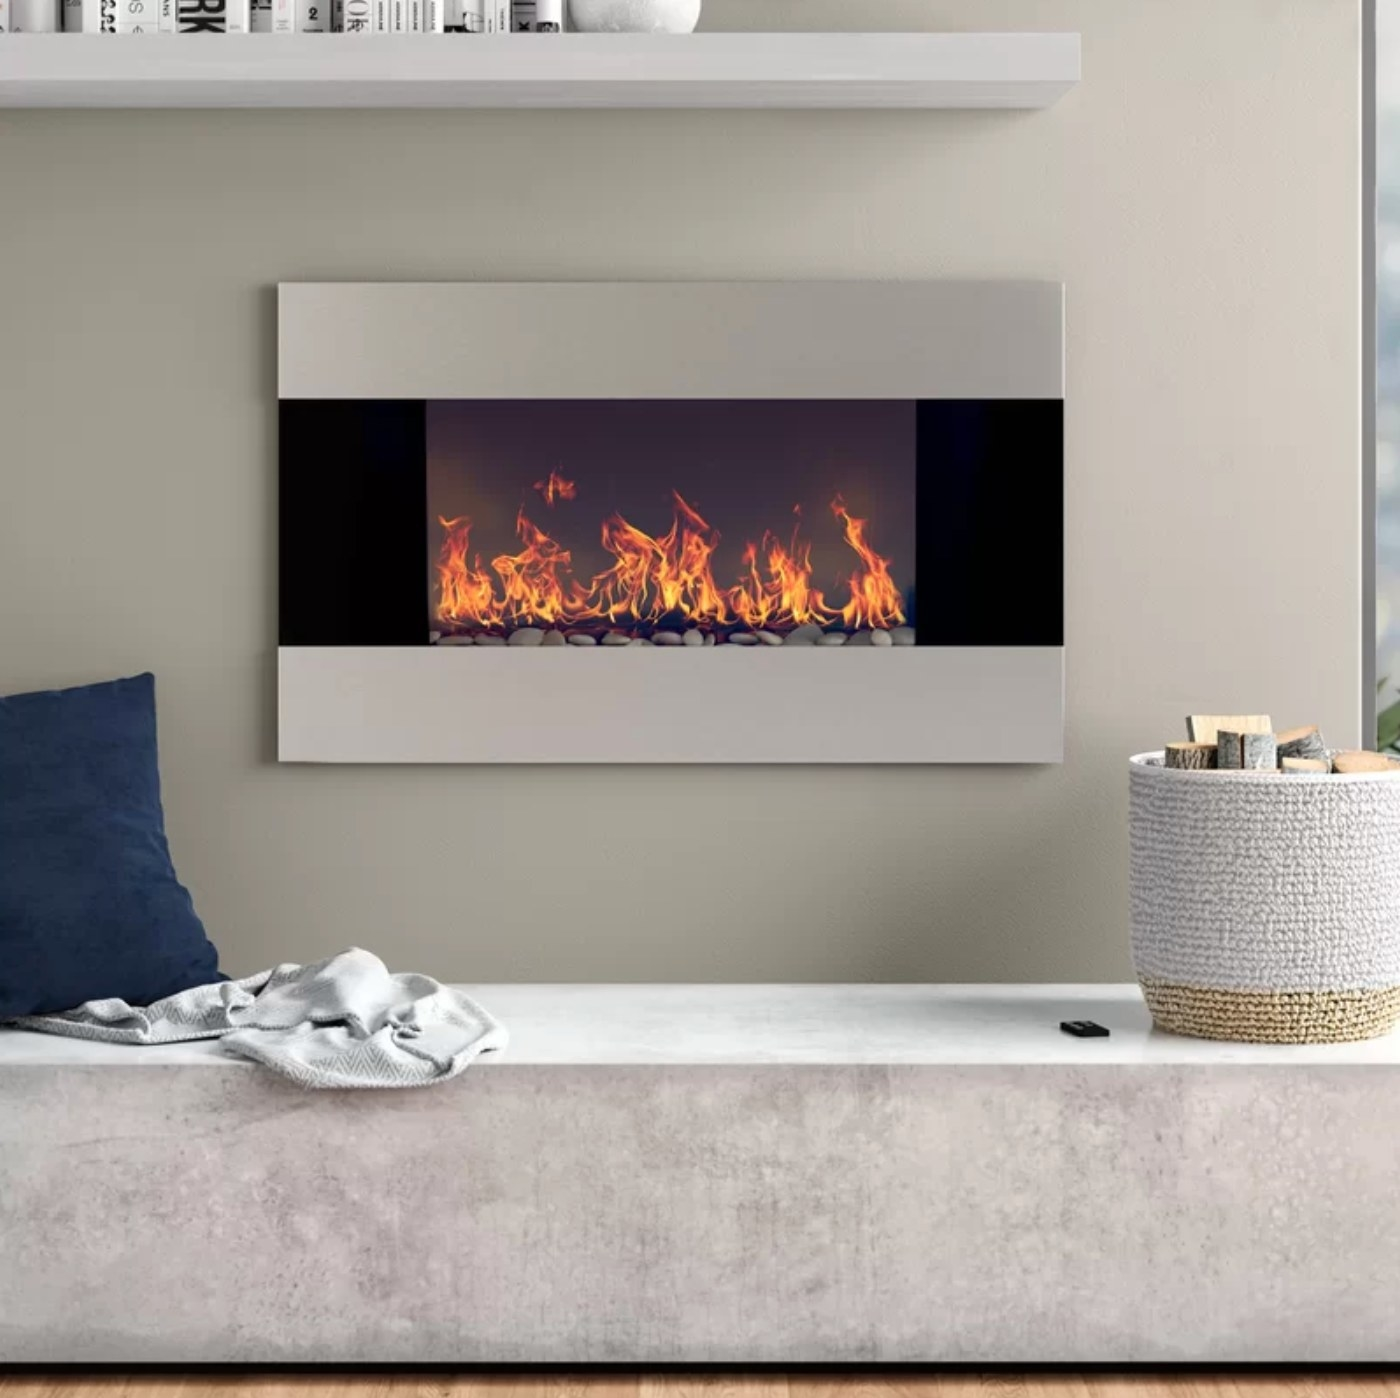 The electric mounted wall fireplace above a gray fabric bench